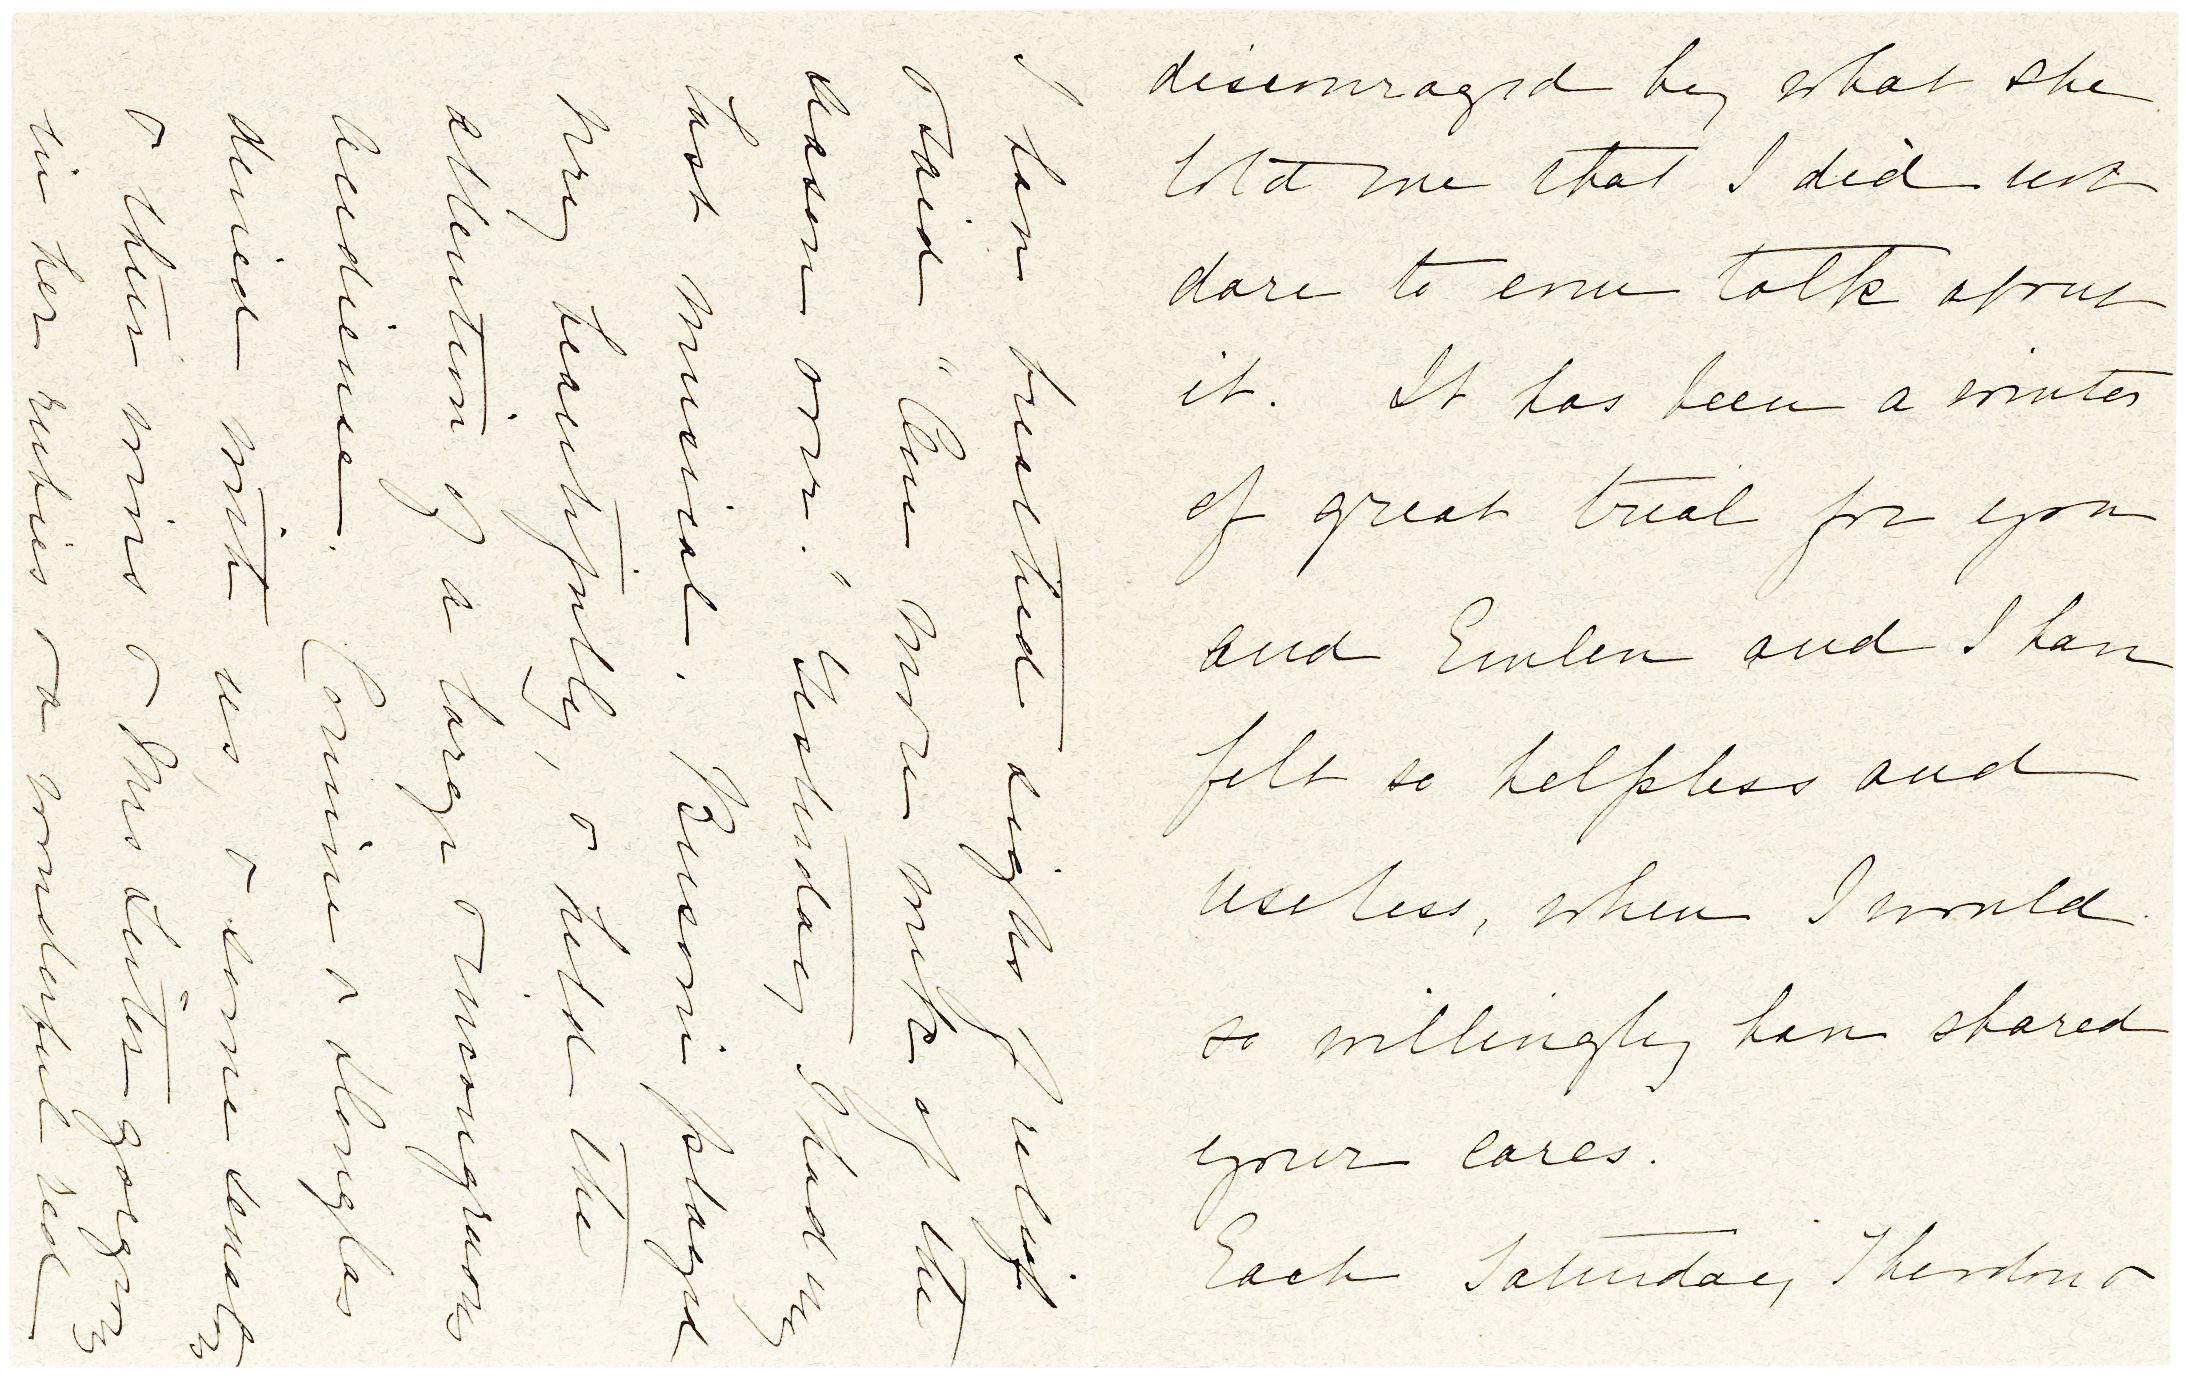 """Autograph letter on White House stationery from First Lady and second wife of Theodore Roosevelt, Edith K. Roosevelt: """"Each Saturday Theodore & I have breathed sighs of relief"""""""